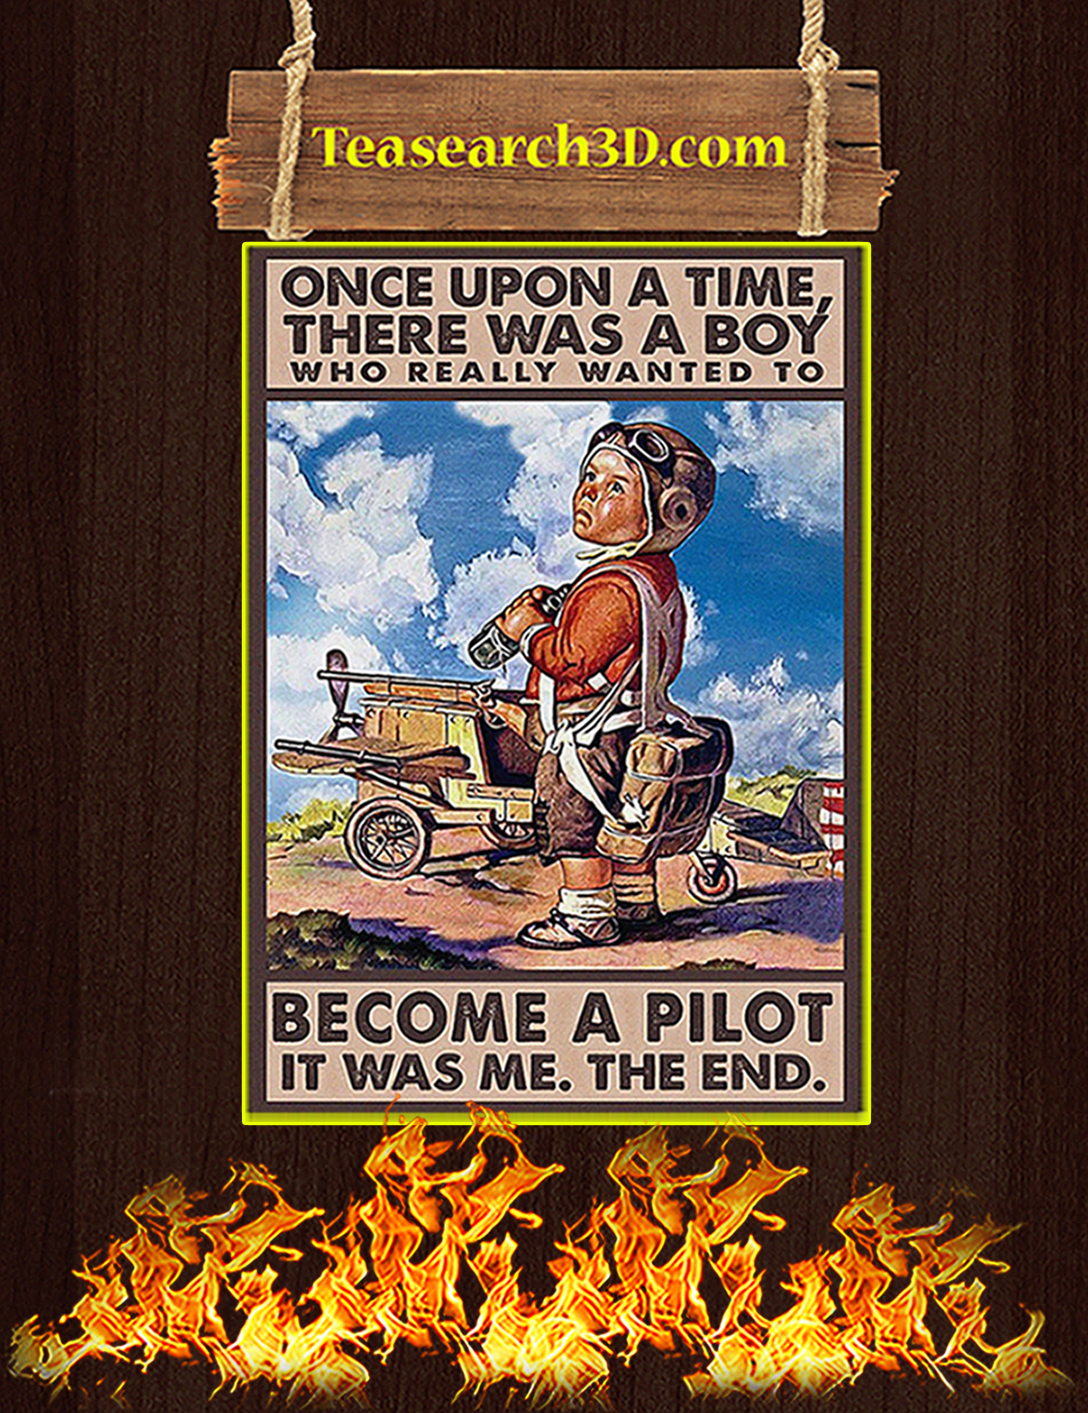 Once upon a time there was a boy who really wanted to become a pilot poster A2